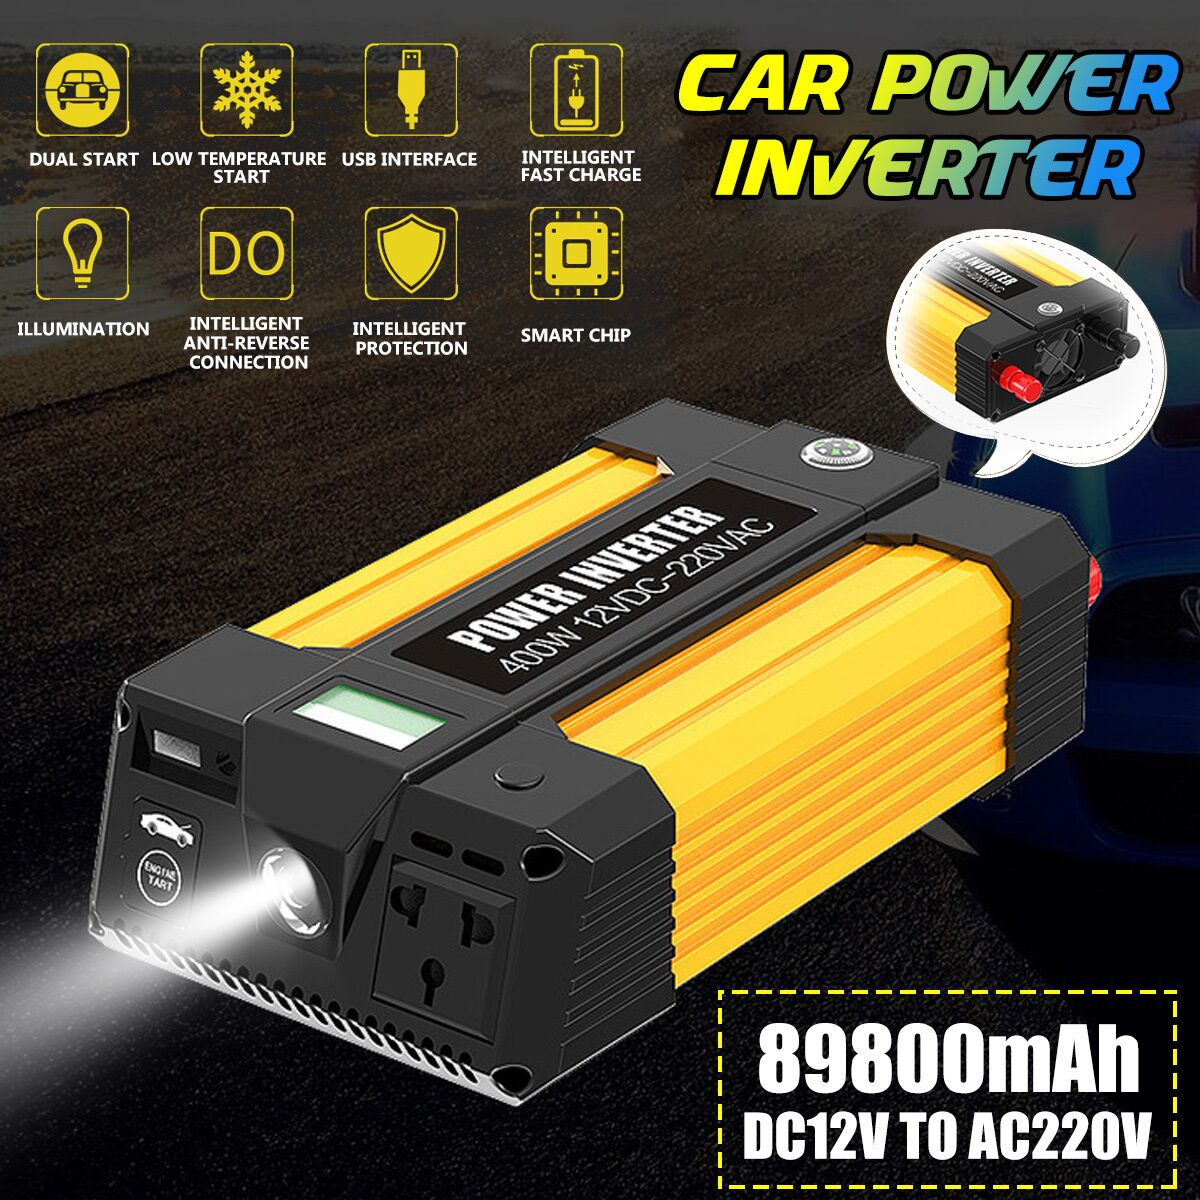 2 IN 1 Car Jump Starter Power Inverter Portable Charger Battery Power Bank 400W DC 12V To AC 220V USB Battery Booster Power Bank(China)